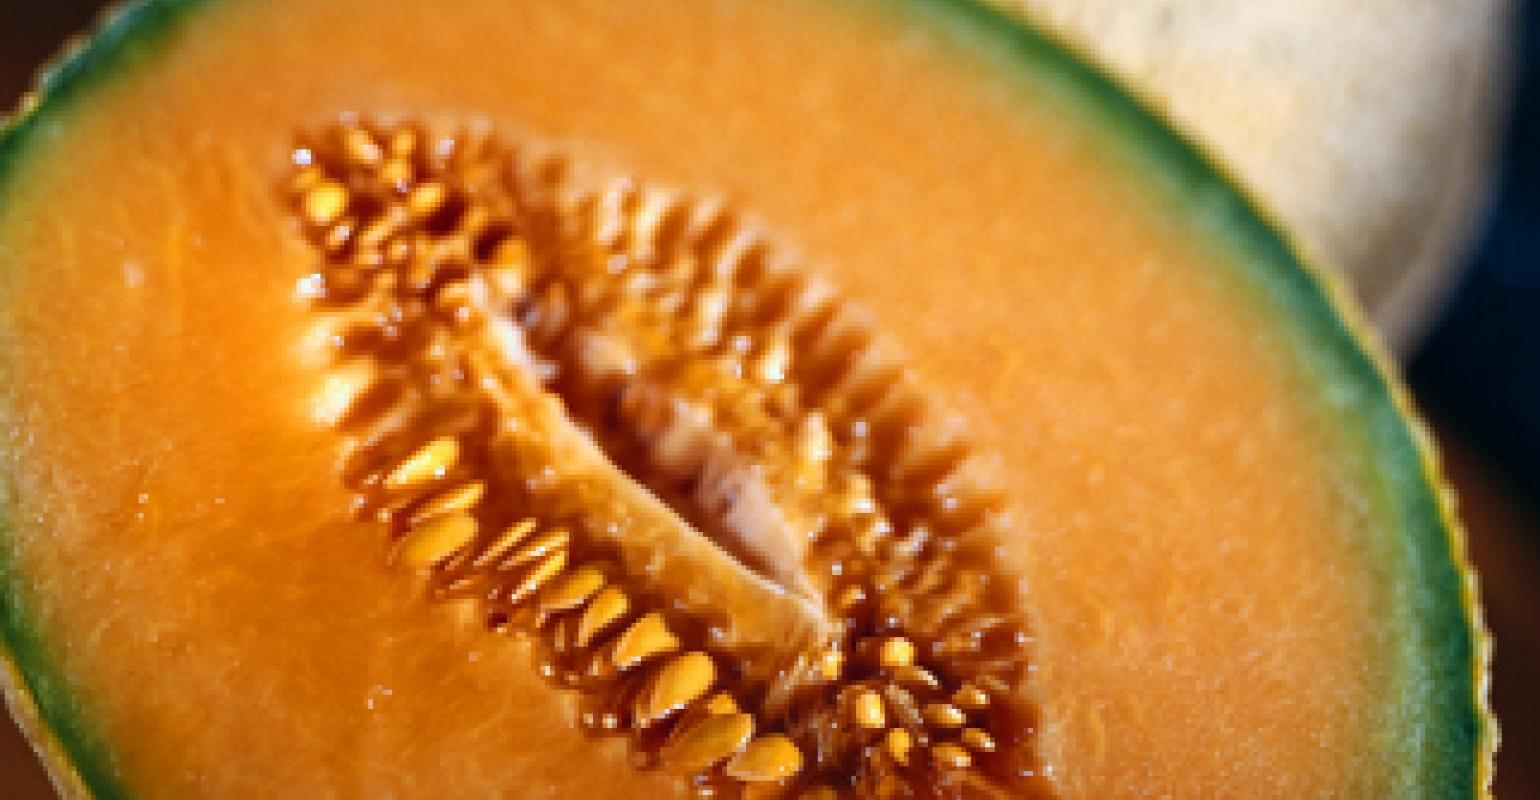 Fda Packing Plant A Likely Factor In The Deadly Cantaloupe Listeria O Packagingdigest Com How many people usually die from listeria every. packaging digest